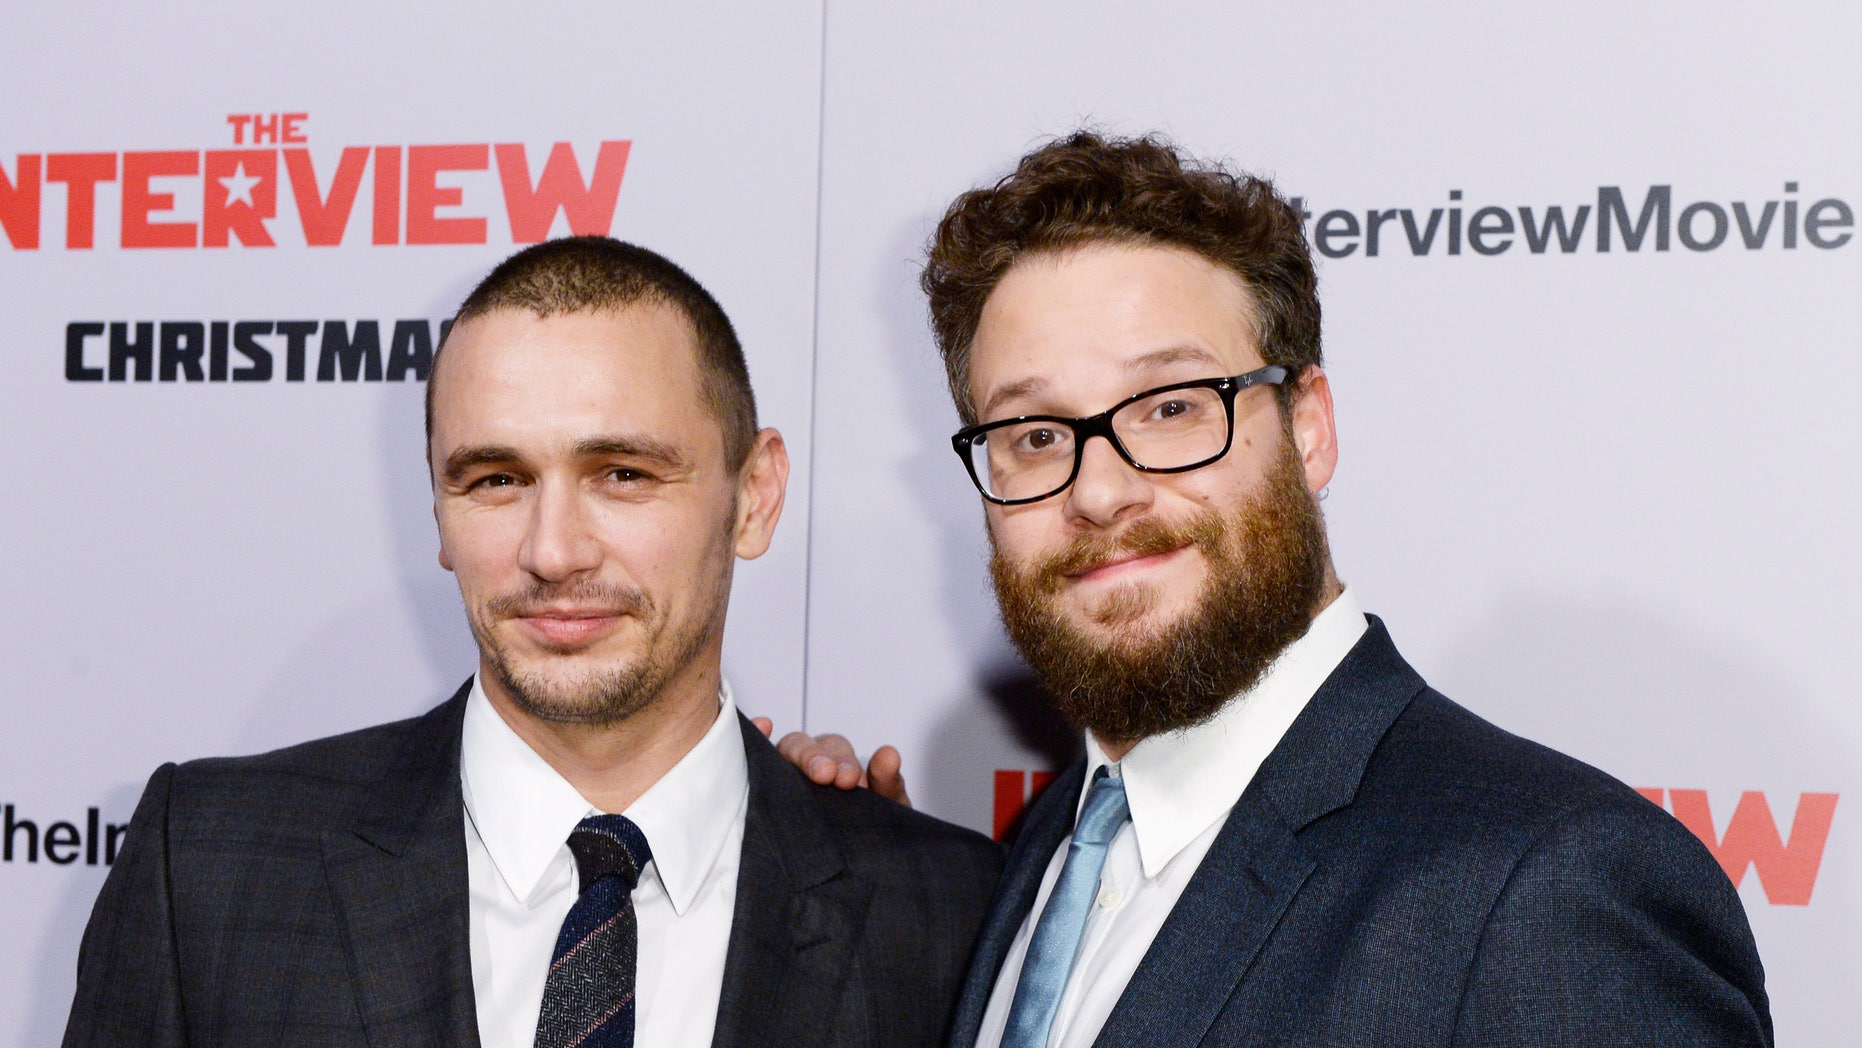 """December 11, 2014. Cast members James Franco (L) and Seth Rogen pose during premiere of the film """"The Interview"""" in Los Angeles, California."""